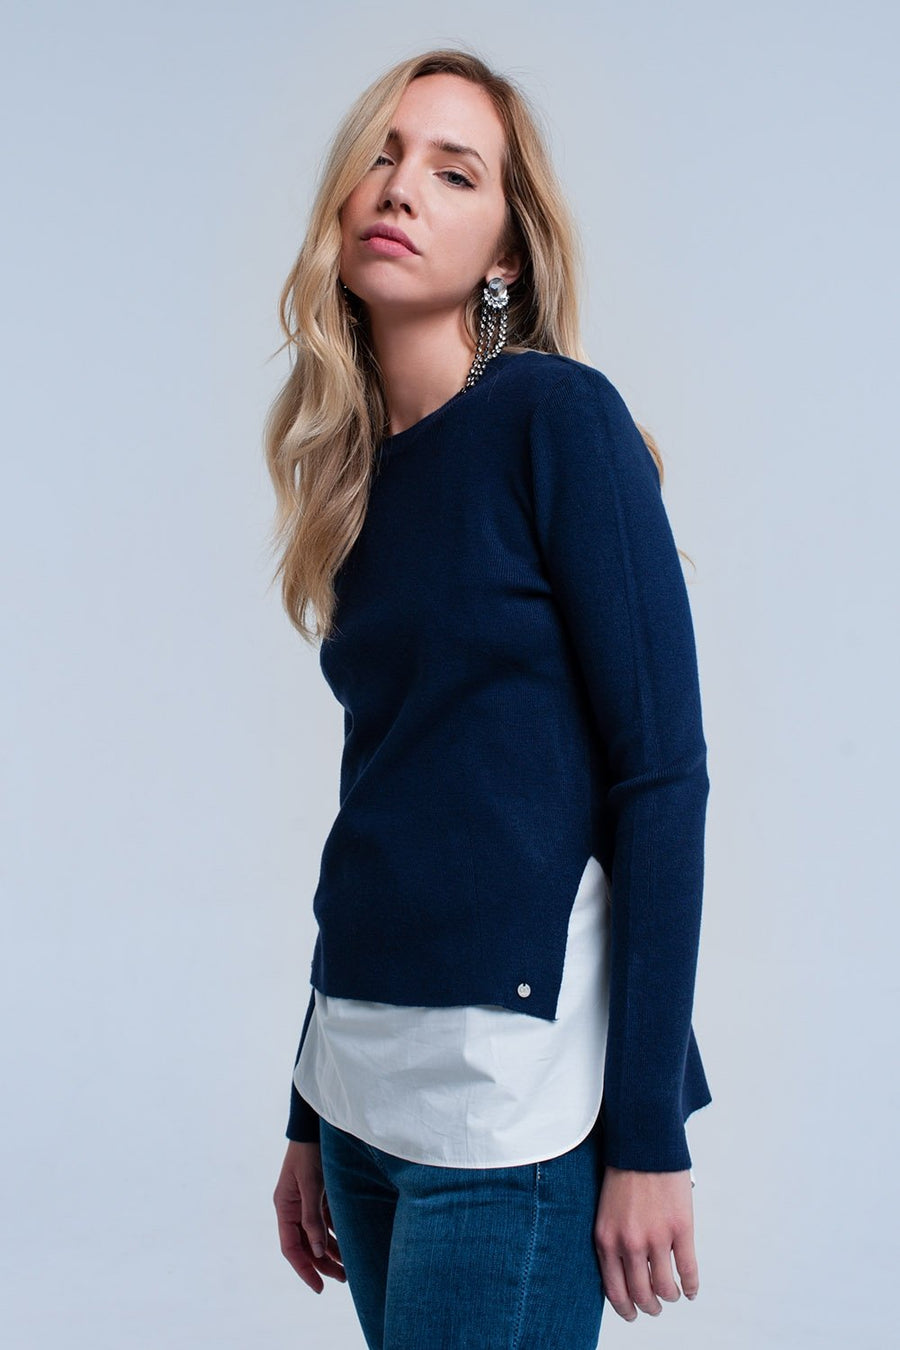 Navy sweater with shirt Women - Apparel - Sweaters Cardigans and Tops Tigerlily and Me